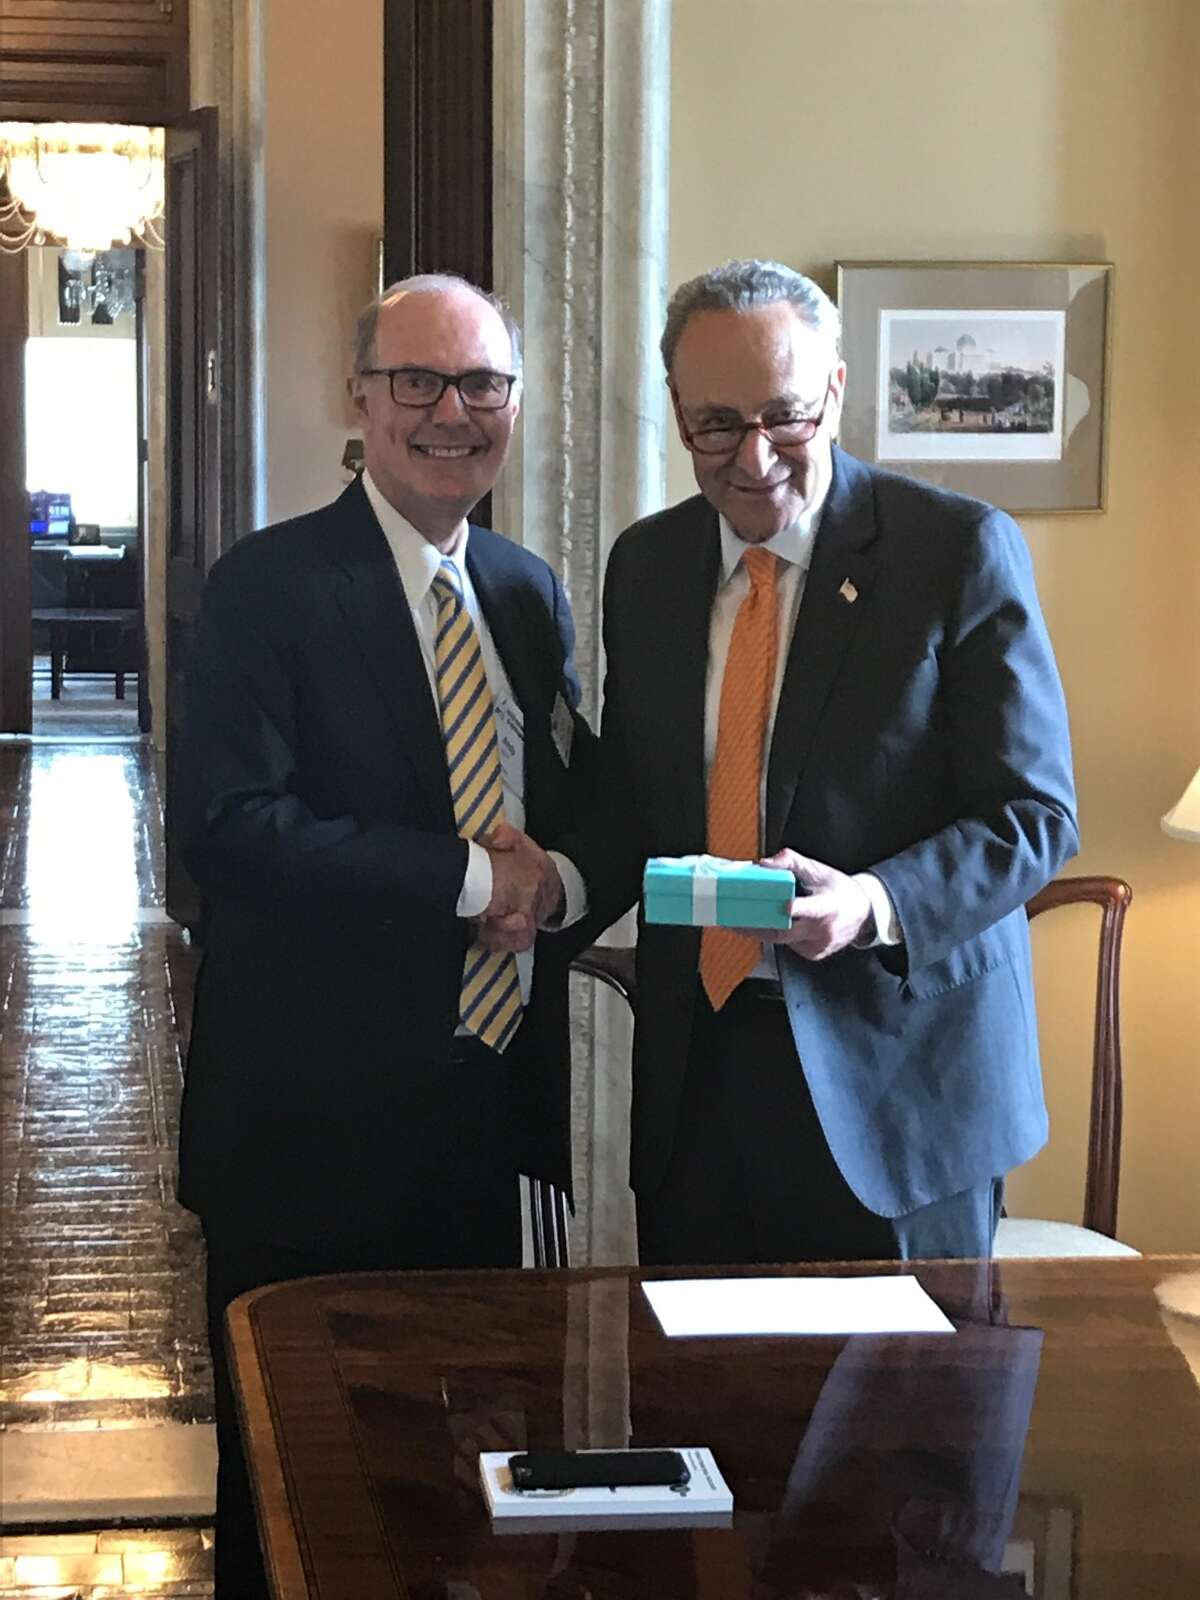 Plug Power CEO Andy Marsh, left, with U.S. Sen. Chuck Schumer of New York in Washington, D.C. Marsh presented Schumer with a special award for pushing through a tax credit on fuel cell purchases.